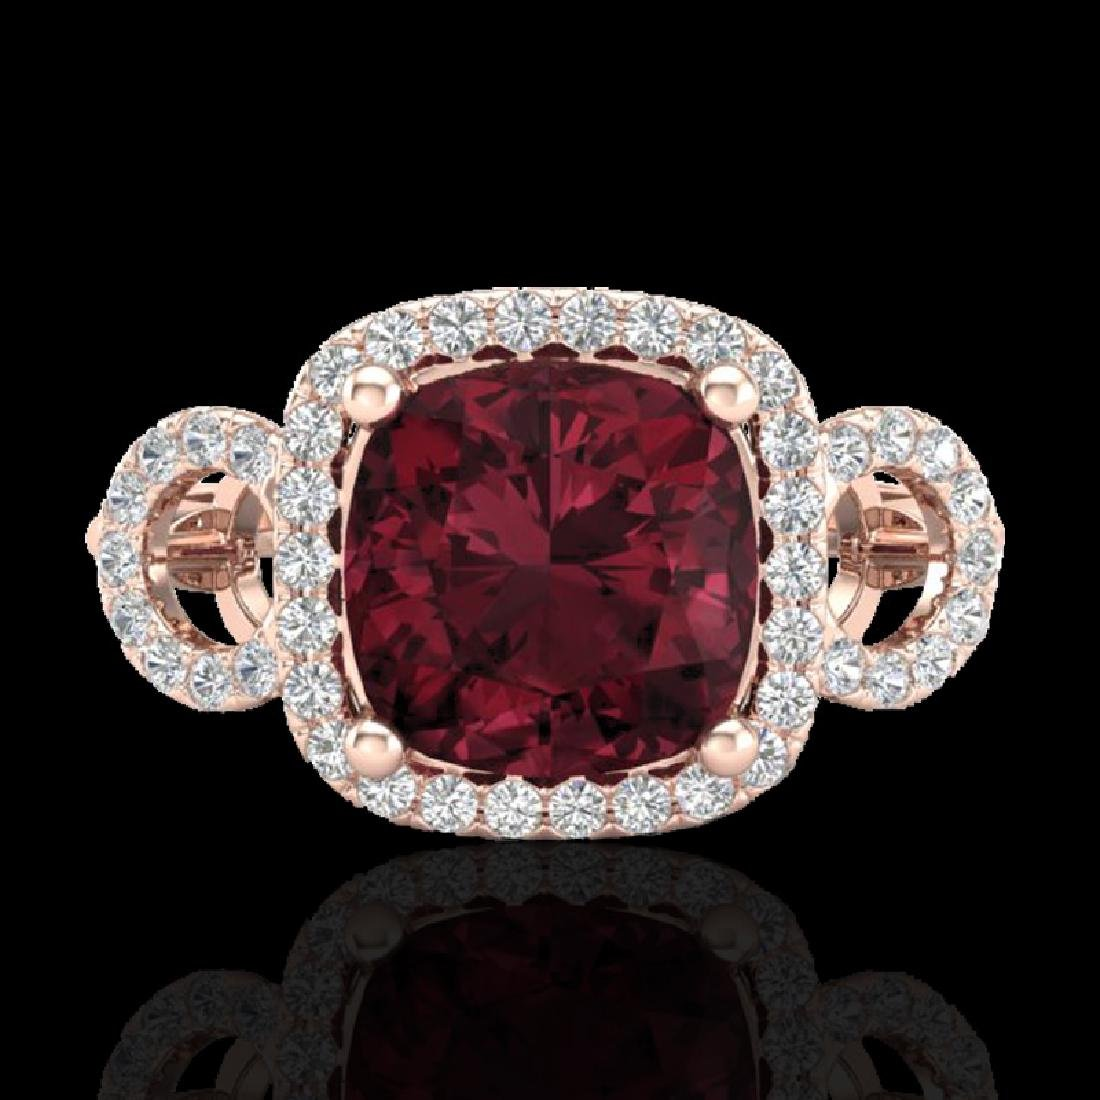 3.75 CTW Garnet & Micro VS/SI Diamond Ring 14K Rose